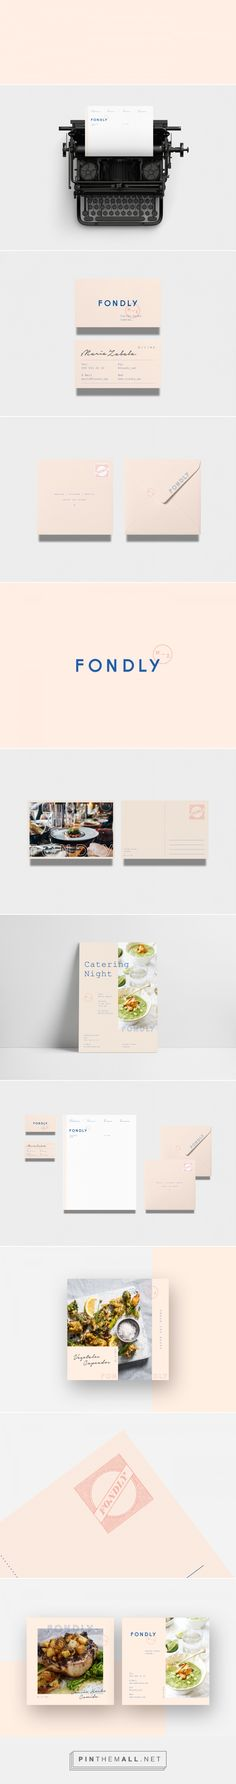 Fondly on Behance... - a grouped images picture - Pin Them All